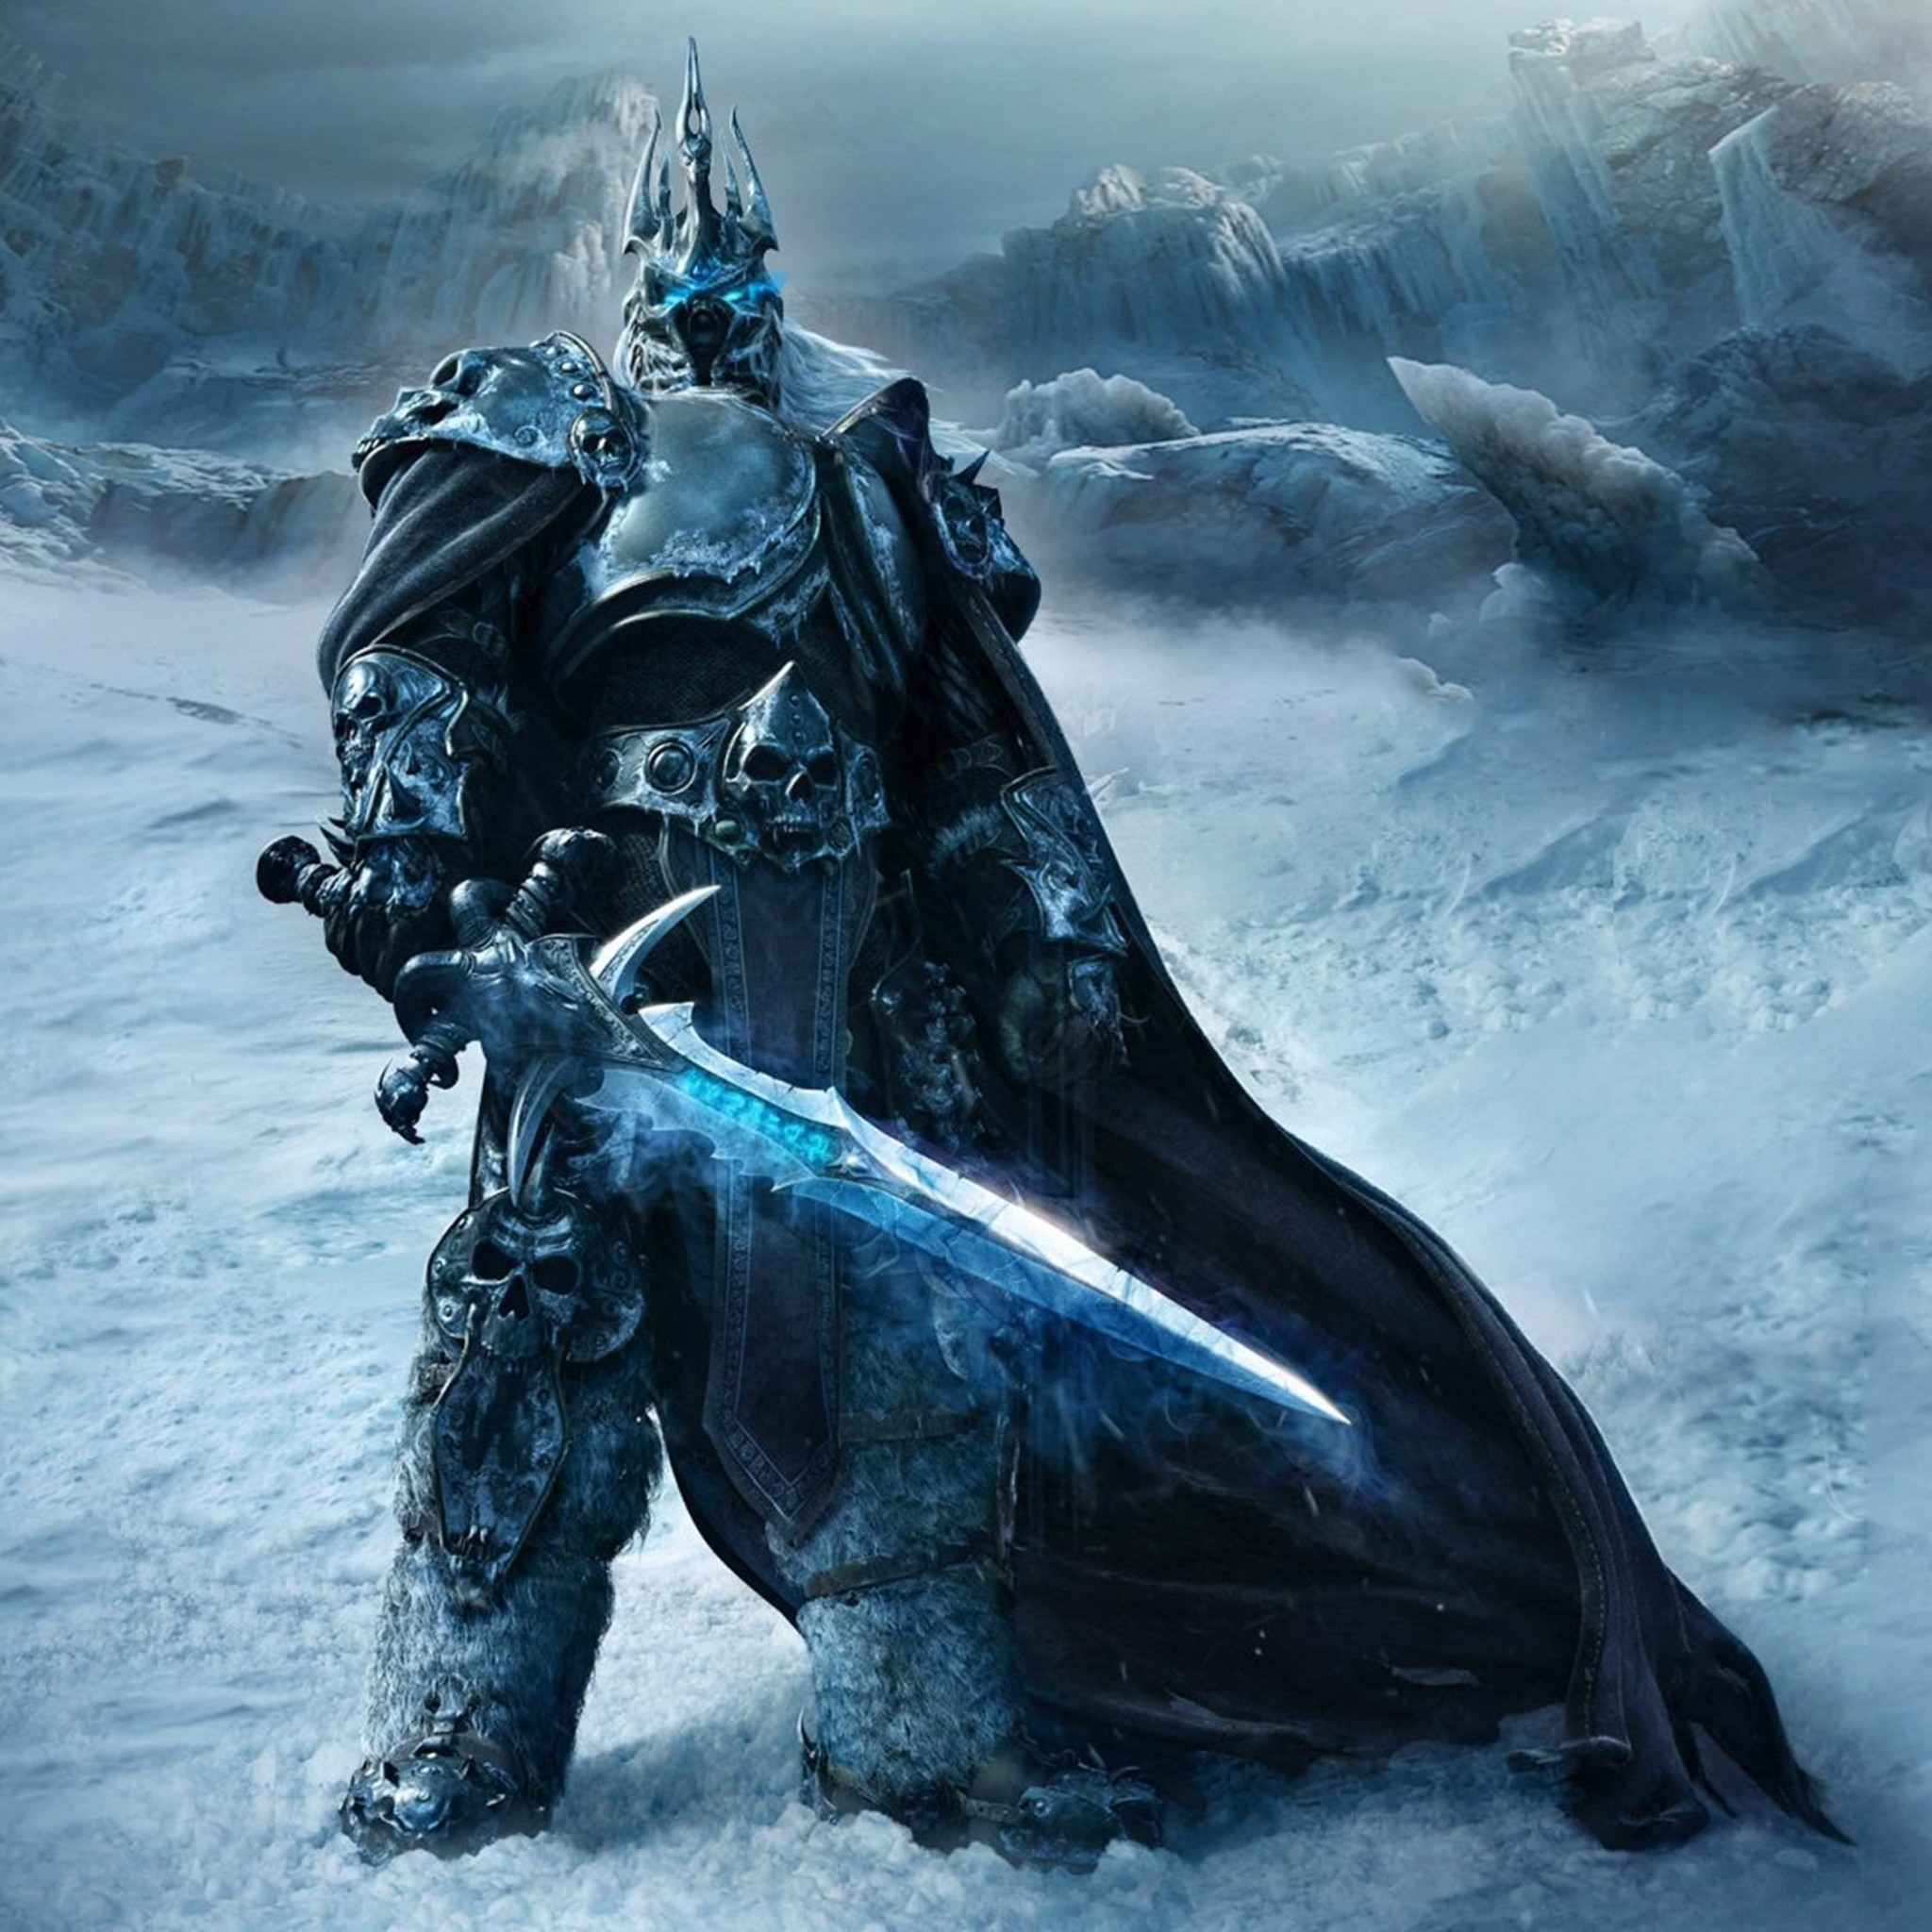 World of Warcraft: Wrath of the Lich King Wallpaper for Google Nexus 9